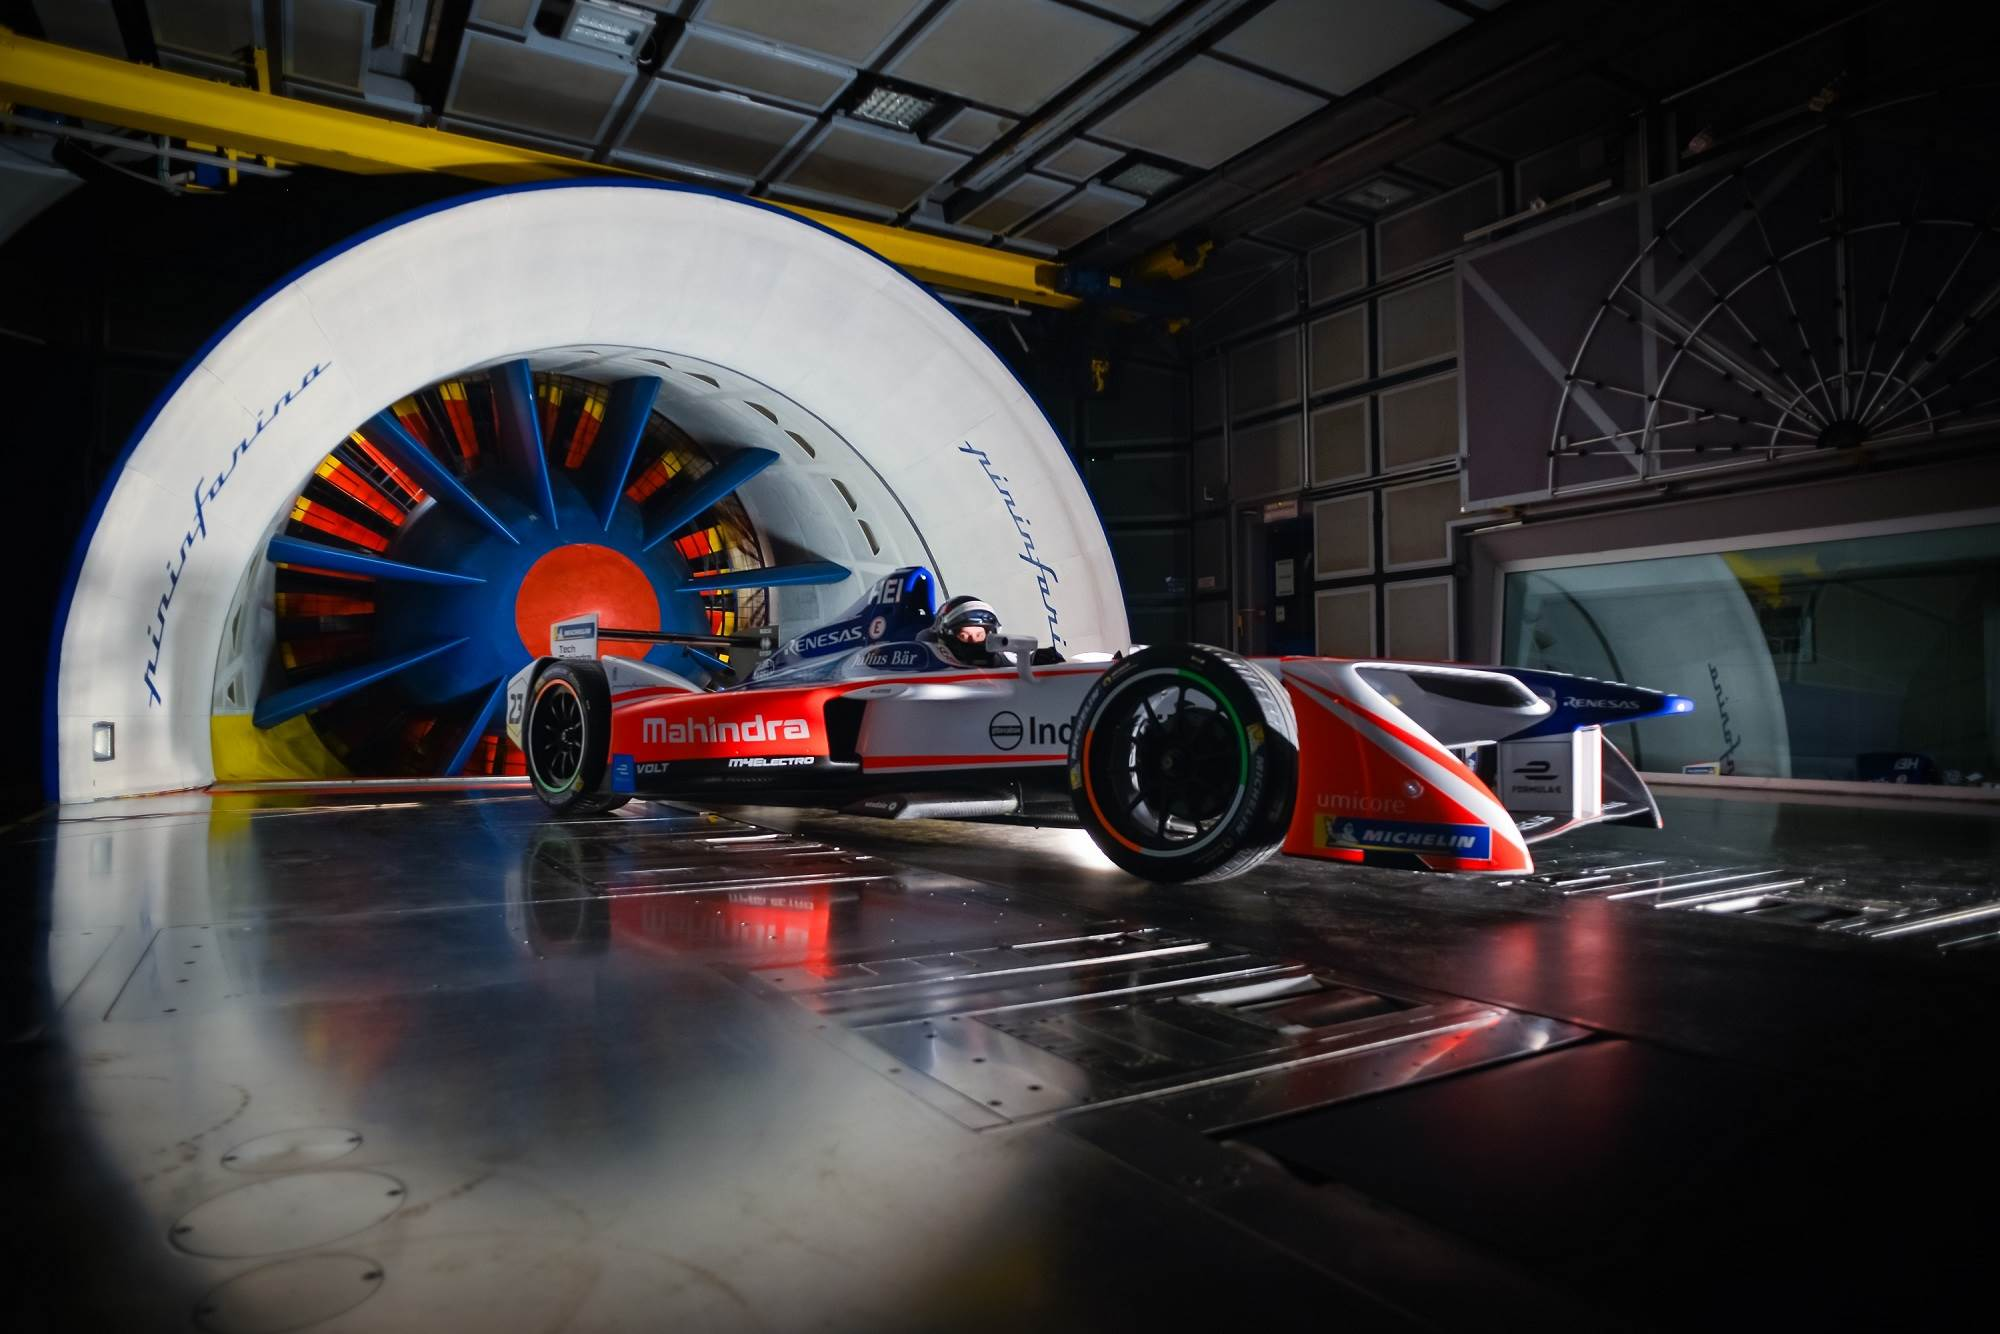 Pininfarina to develop Mahindra's Season 5 Formula E car